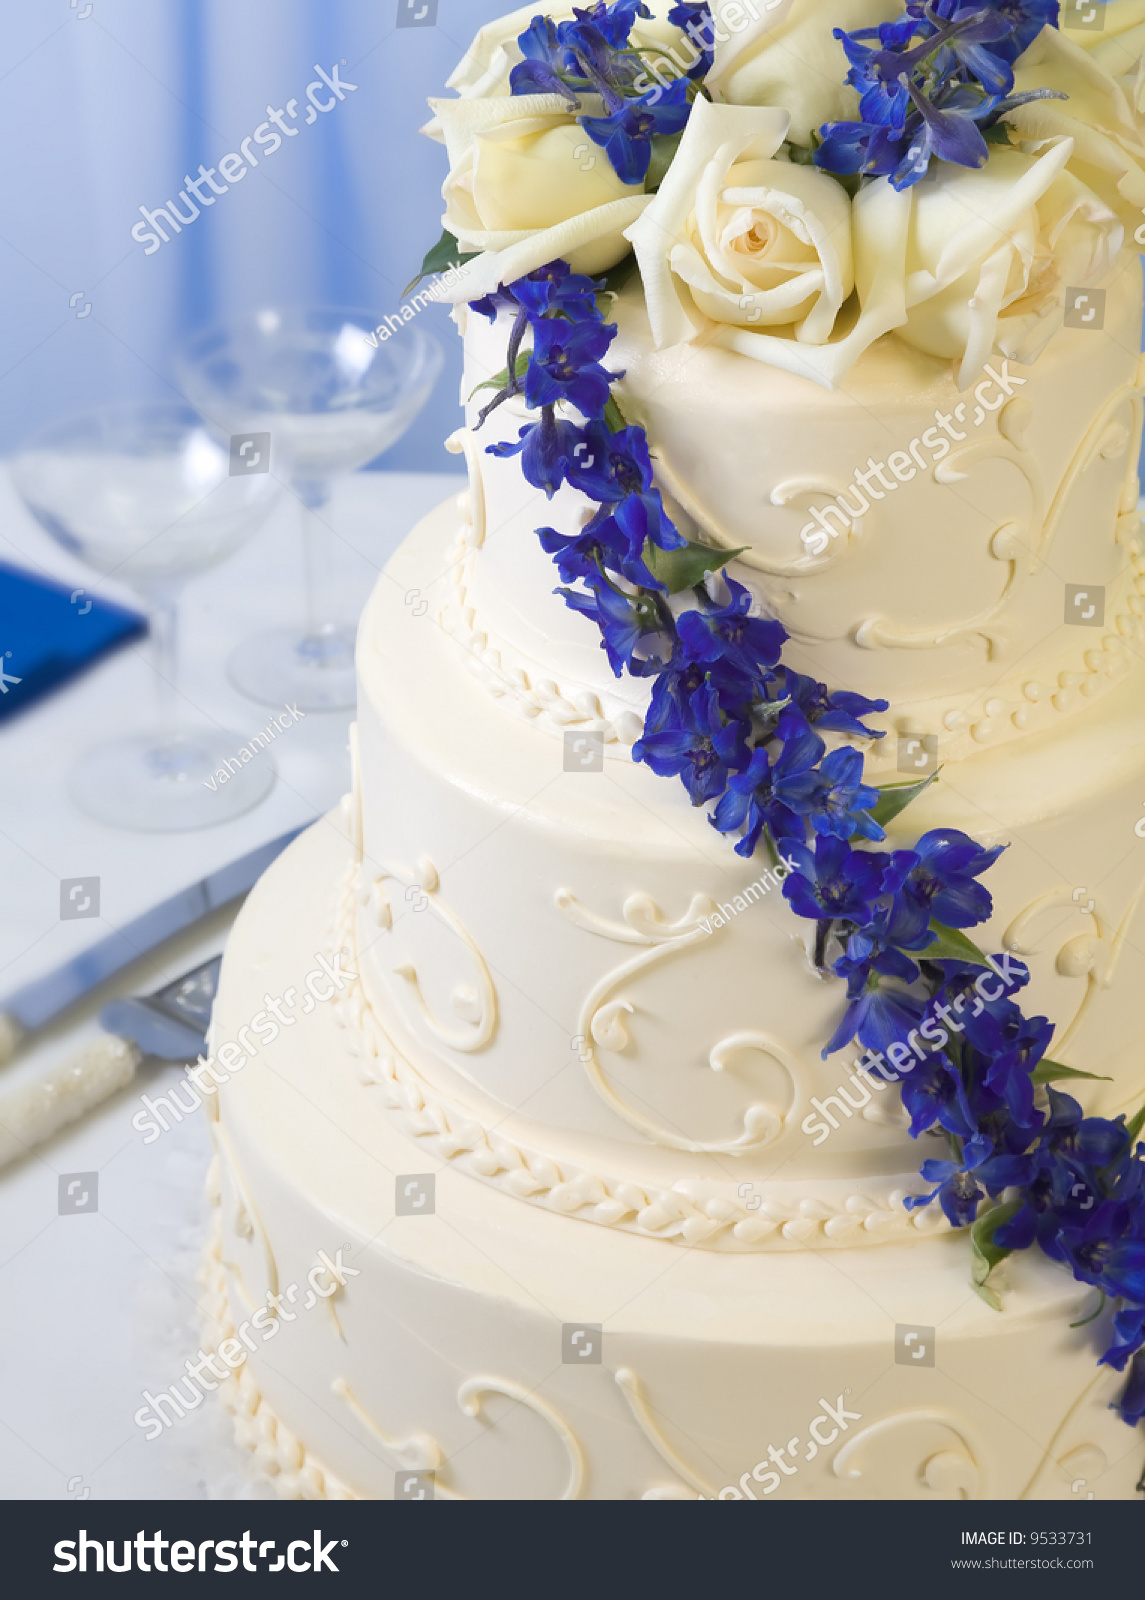 Traditional Decorated Wedding Cake With Blue Delphiniums